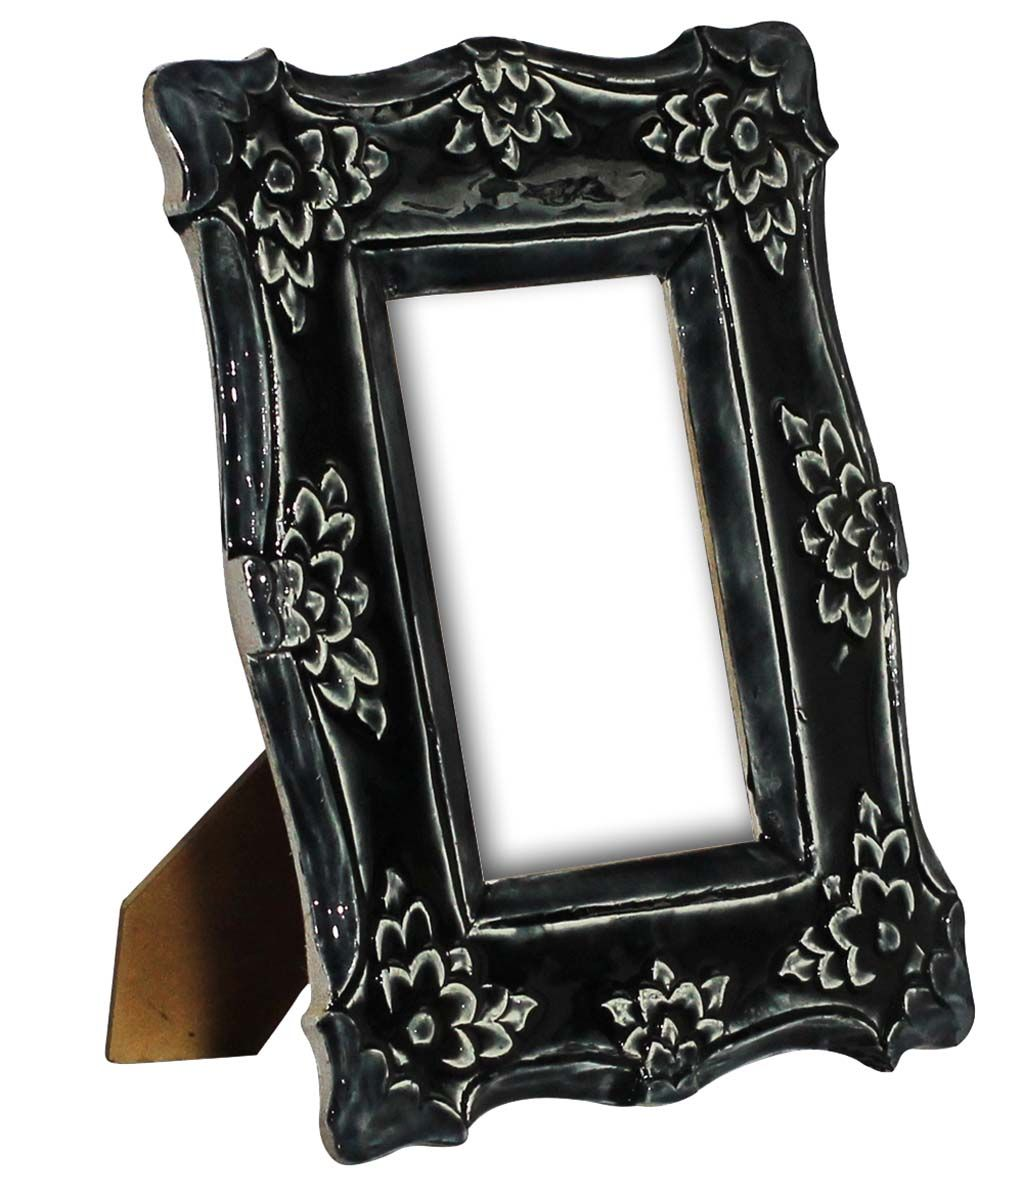 Bulk Wholesale 10 Rectangle Shaped Black Color Photo Frame Picture Stand With Floral Motifs Handmade In Acrylic Compressed Wood Table Top Accessories